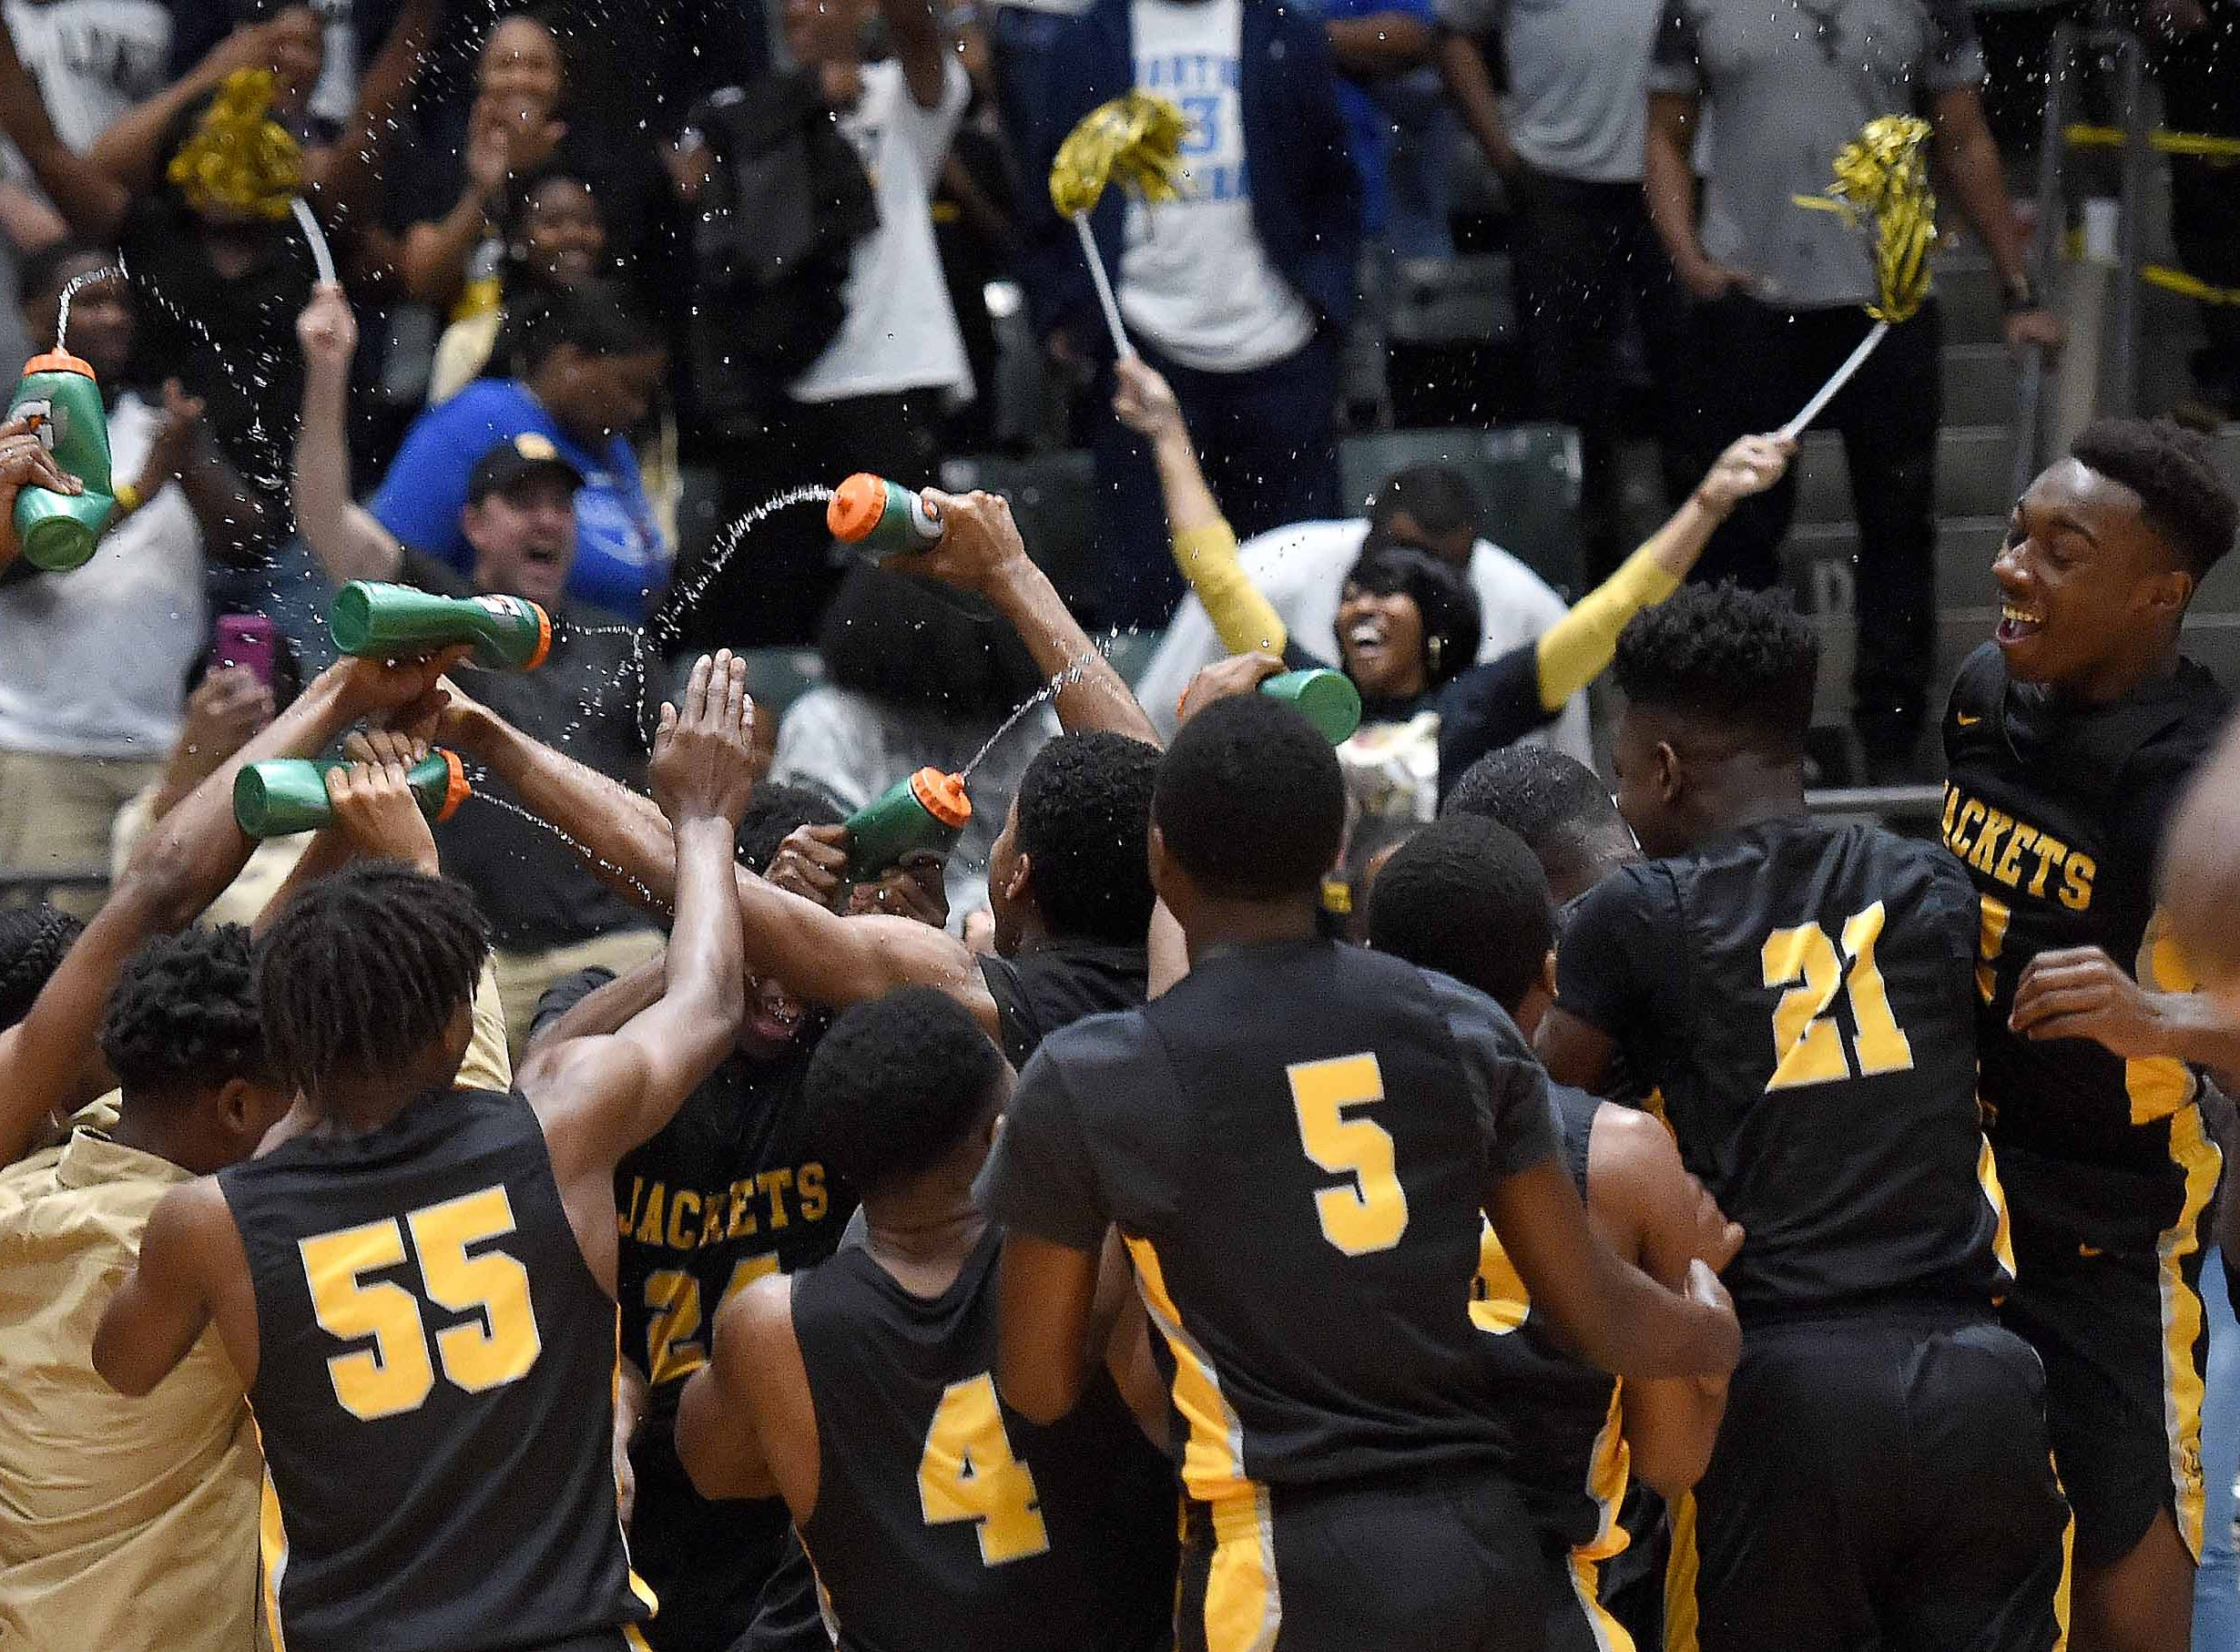 The Starkville Yellow Jackets spray head coach Greg Carter with water bottles after beating Meridian in the Class 6A finals of the MHSAA C Spire State Basketball Championships at the Mississippi Coliseum in Jackson, Miss., on Saturday, March 9, 2019.